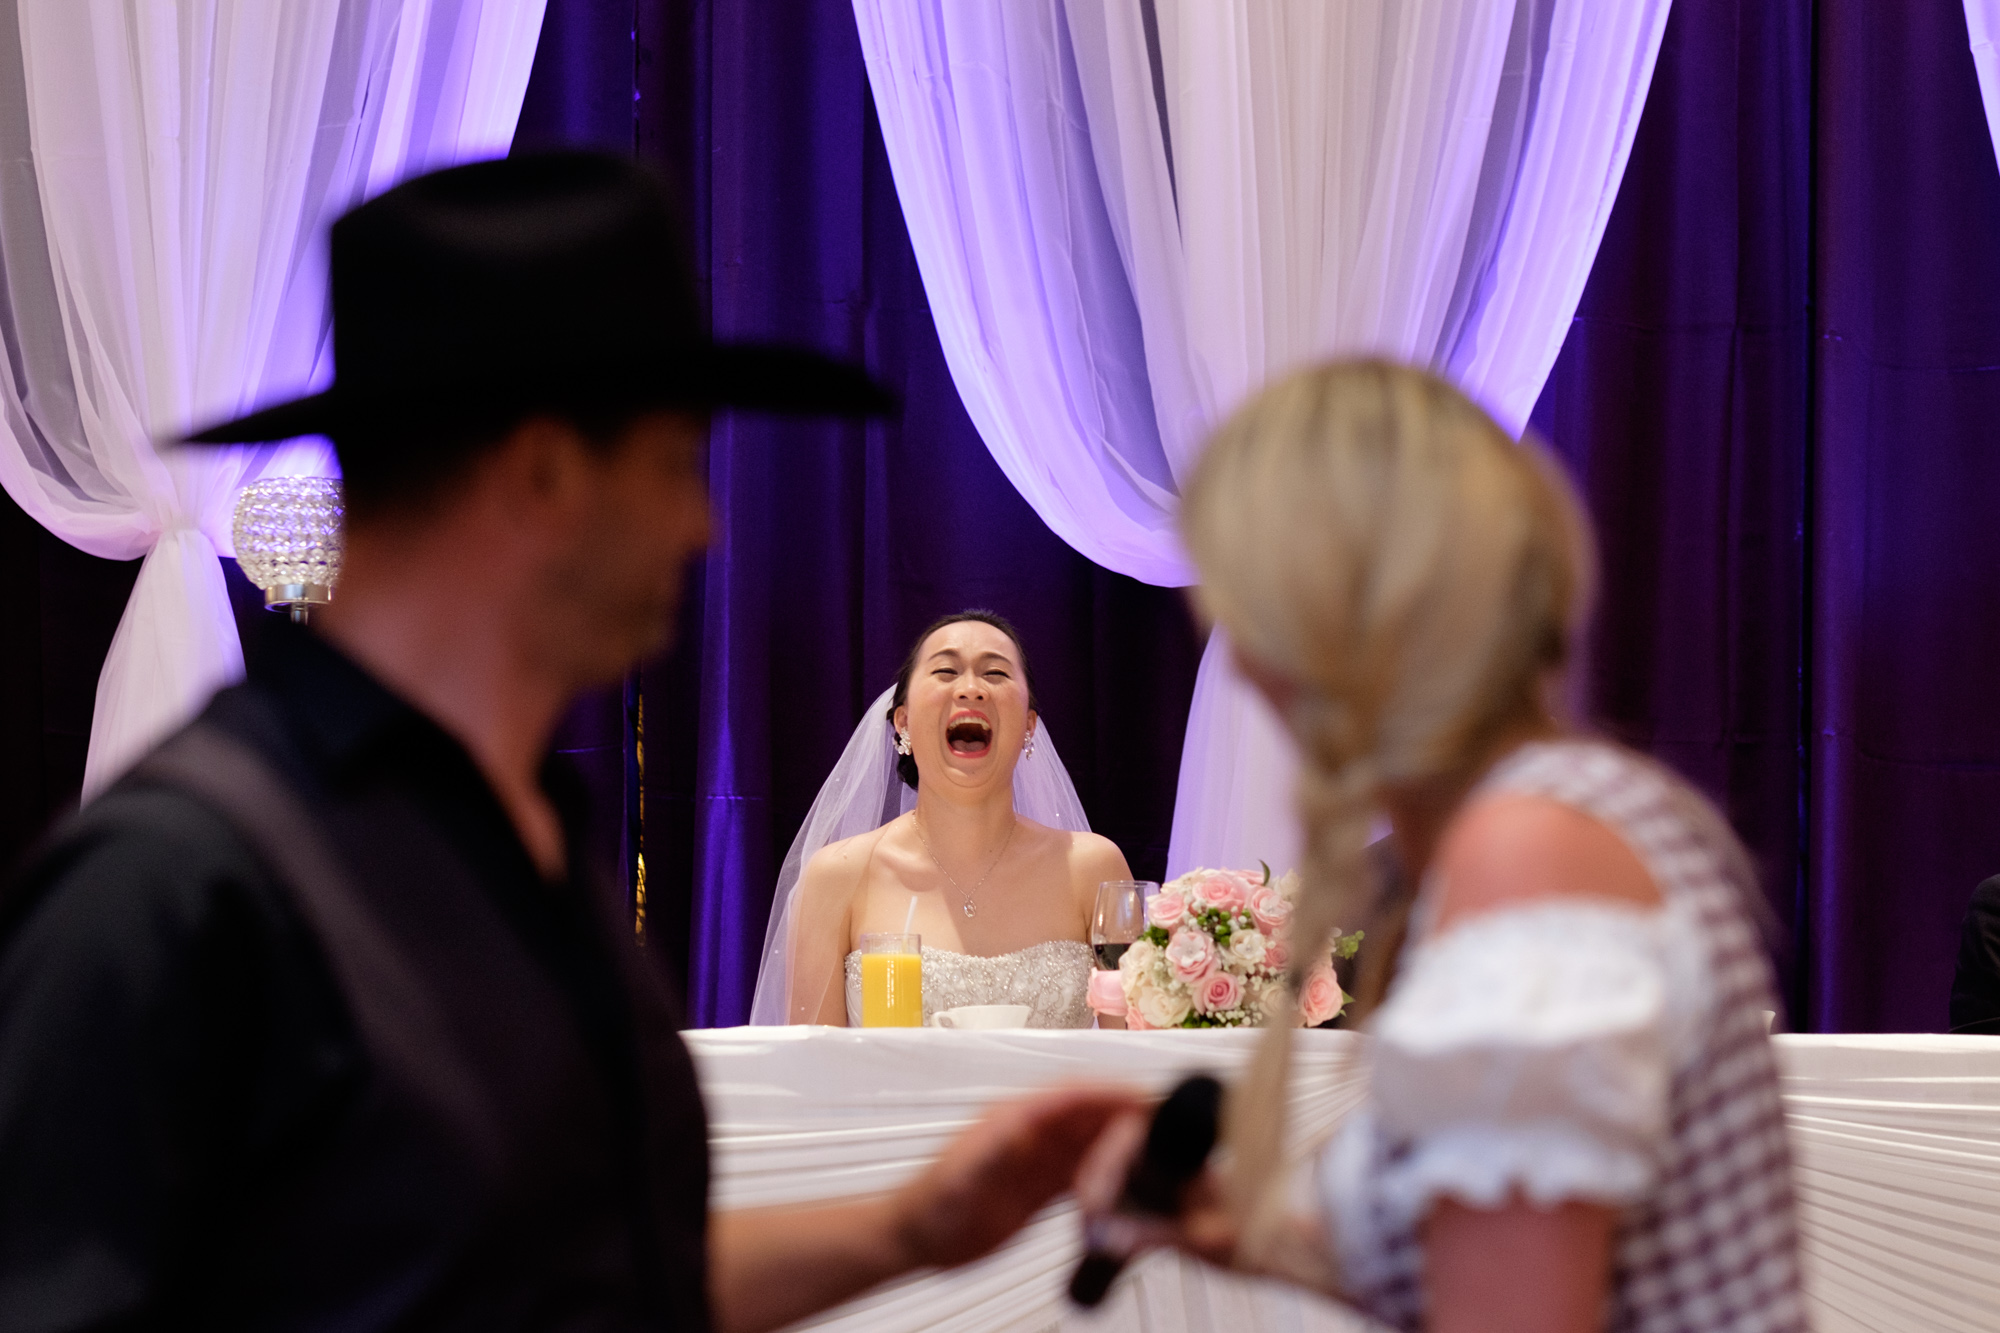 Rene's sisters and brother in toast the bride during Jing + Rene's wedding reception at the Premiere Ballroom.